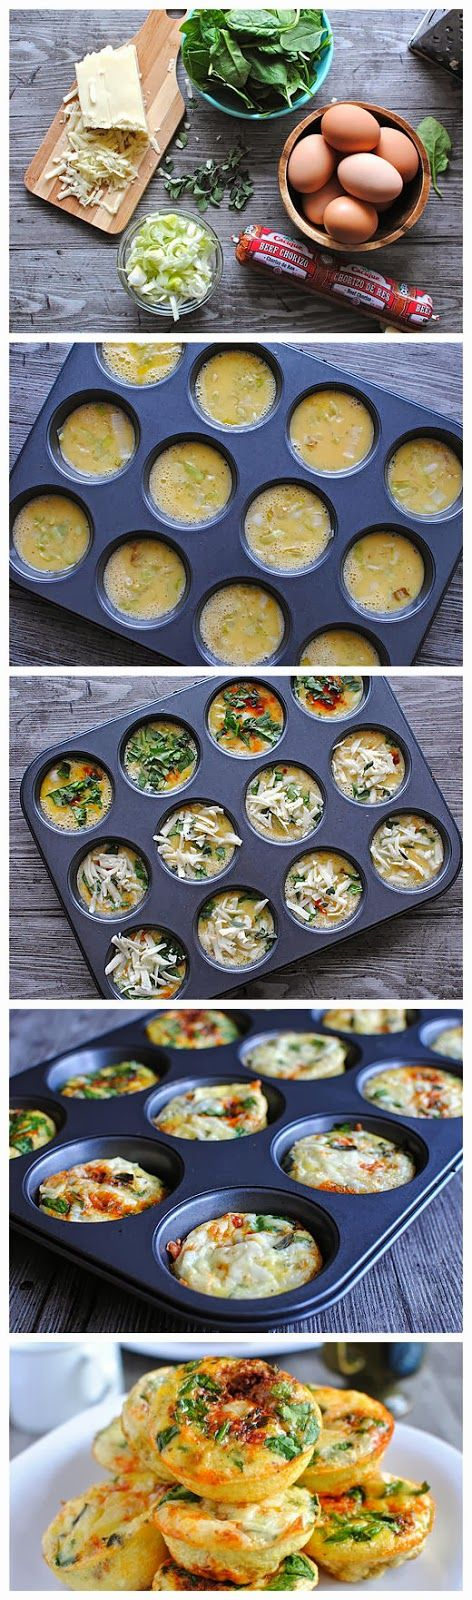 Mini Frittata Brunch Bar - yummykey